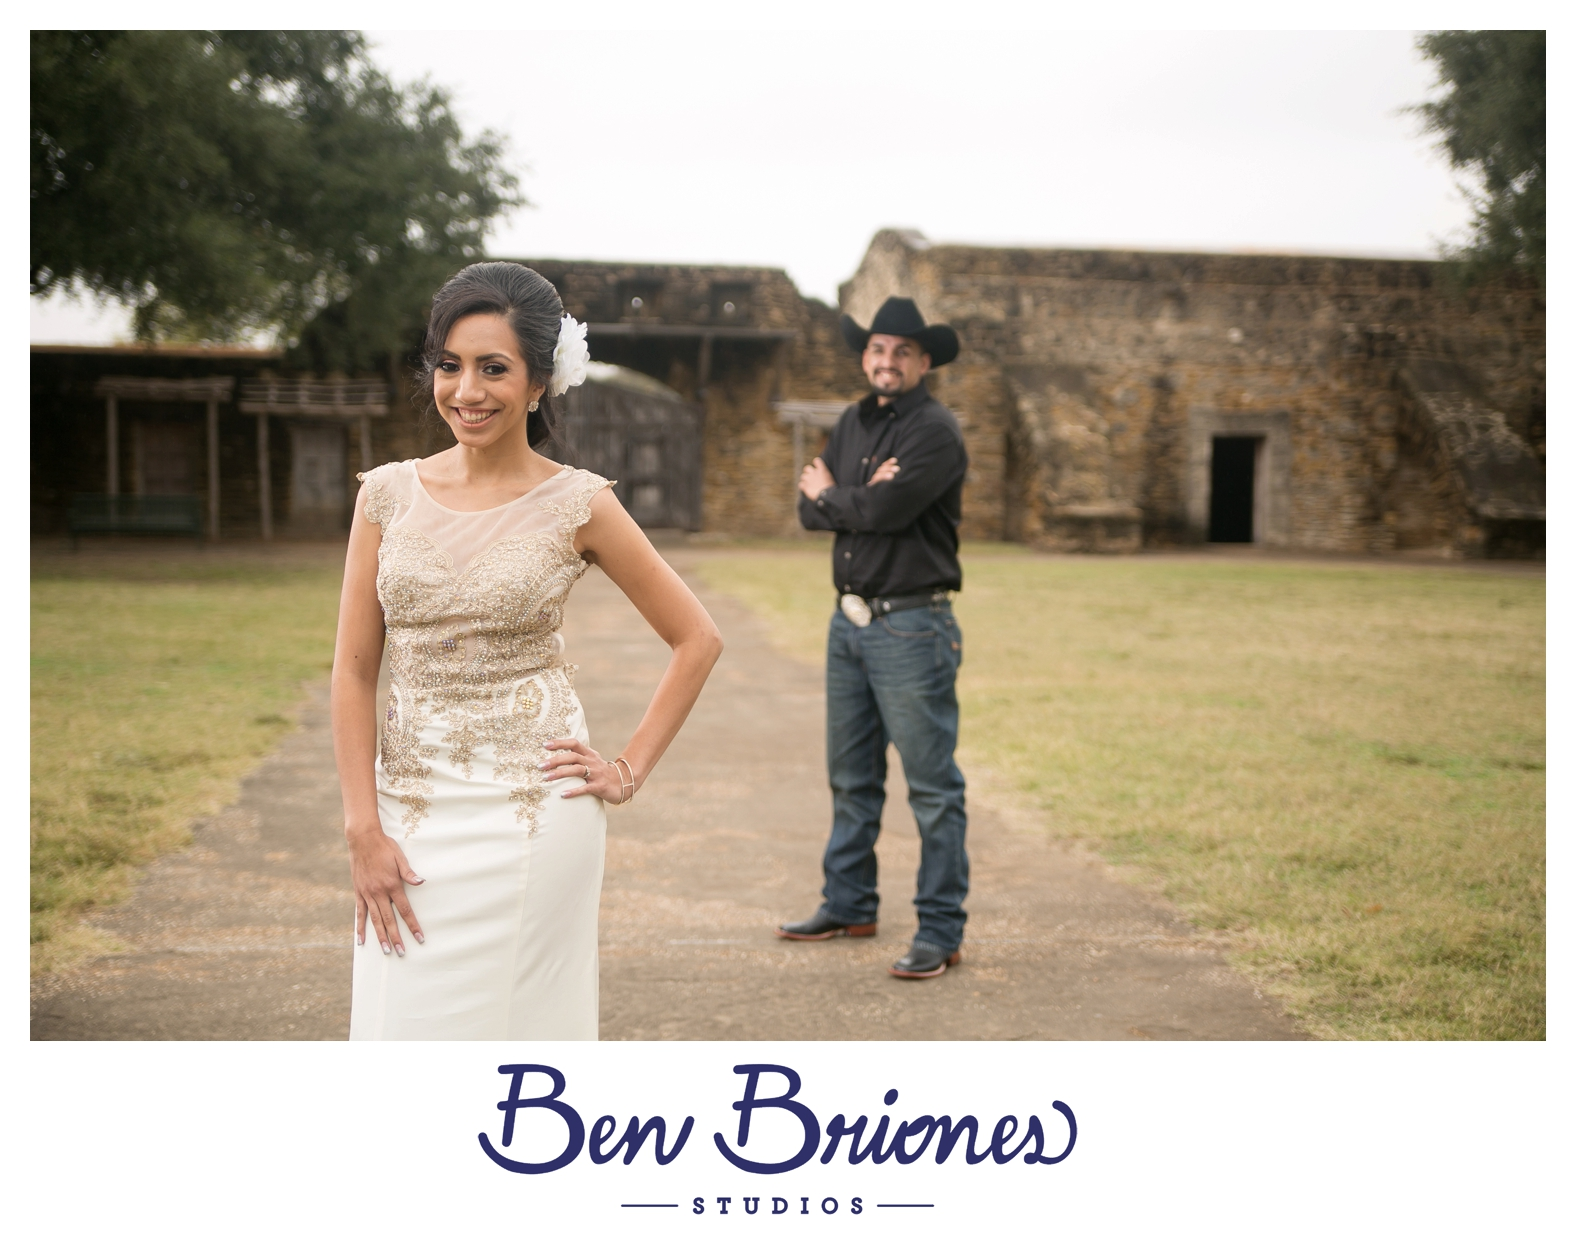 12-12-16_highres_elizabeth-solis-engagement-bridal_bbs-7875_fb